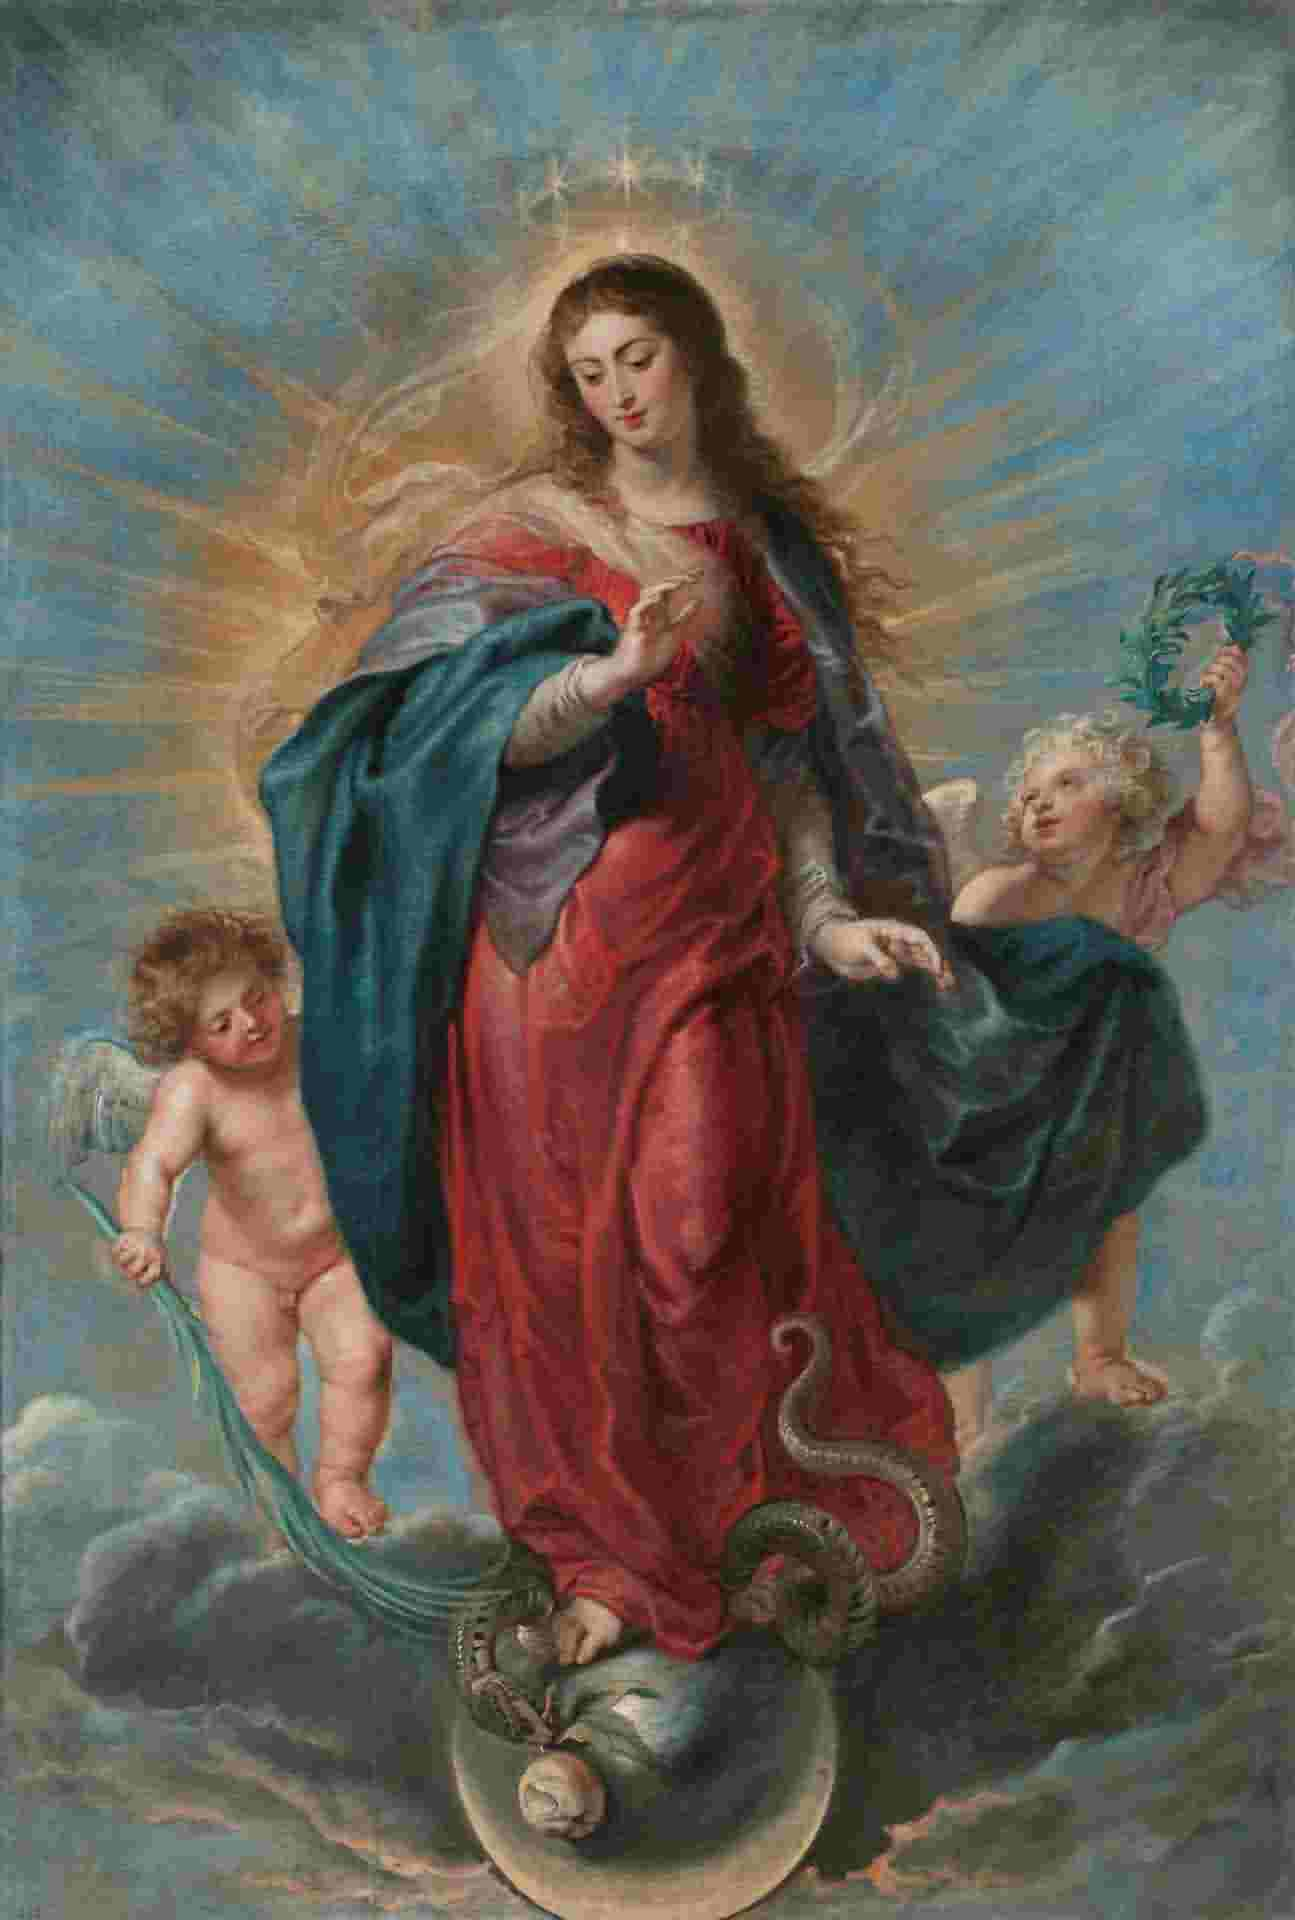 1-Immaculate Conception Day Wishes